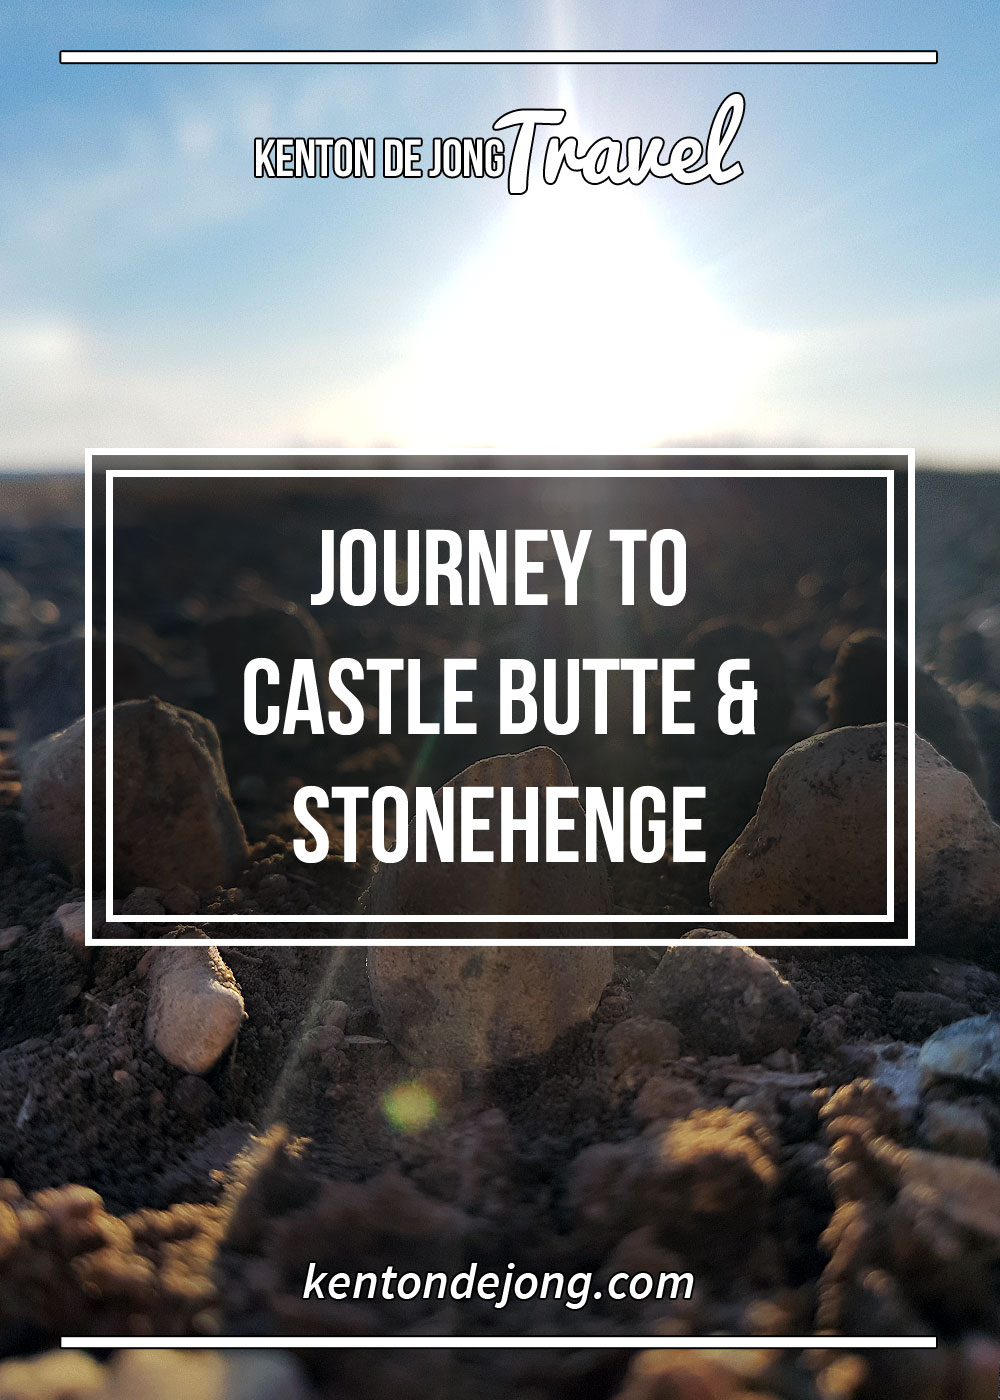 Journey to Stonehenge